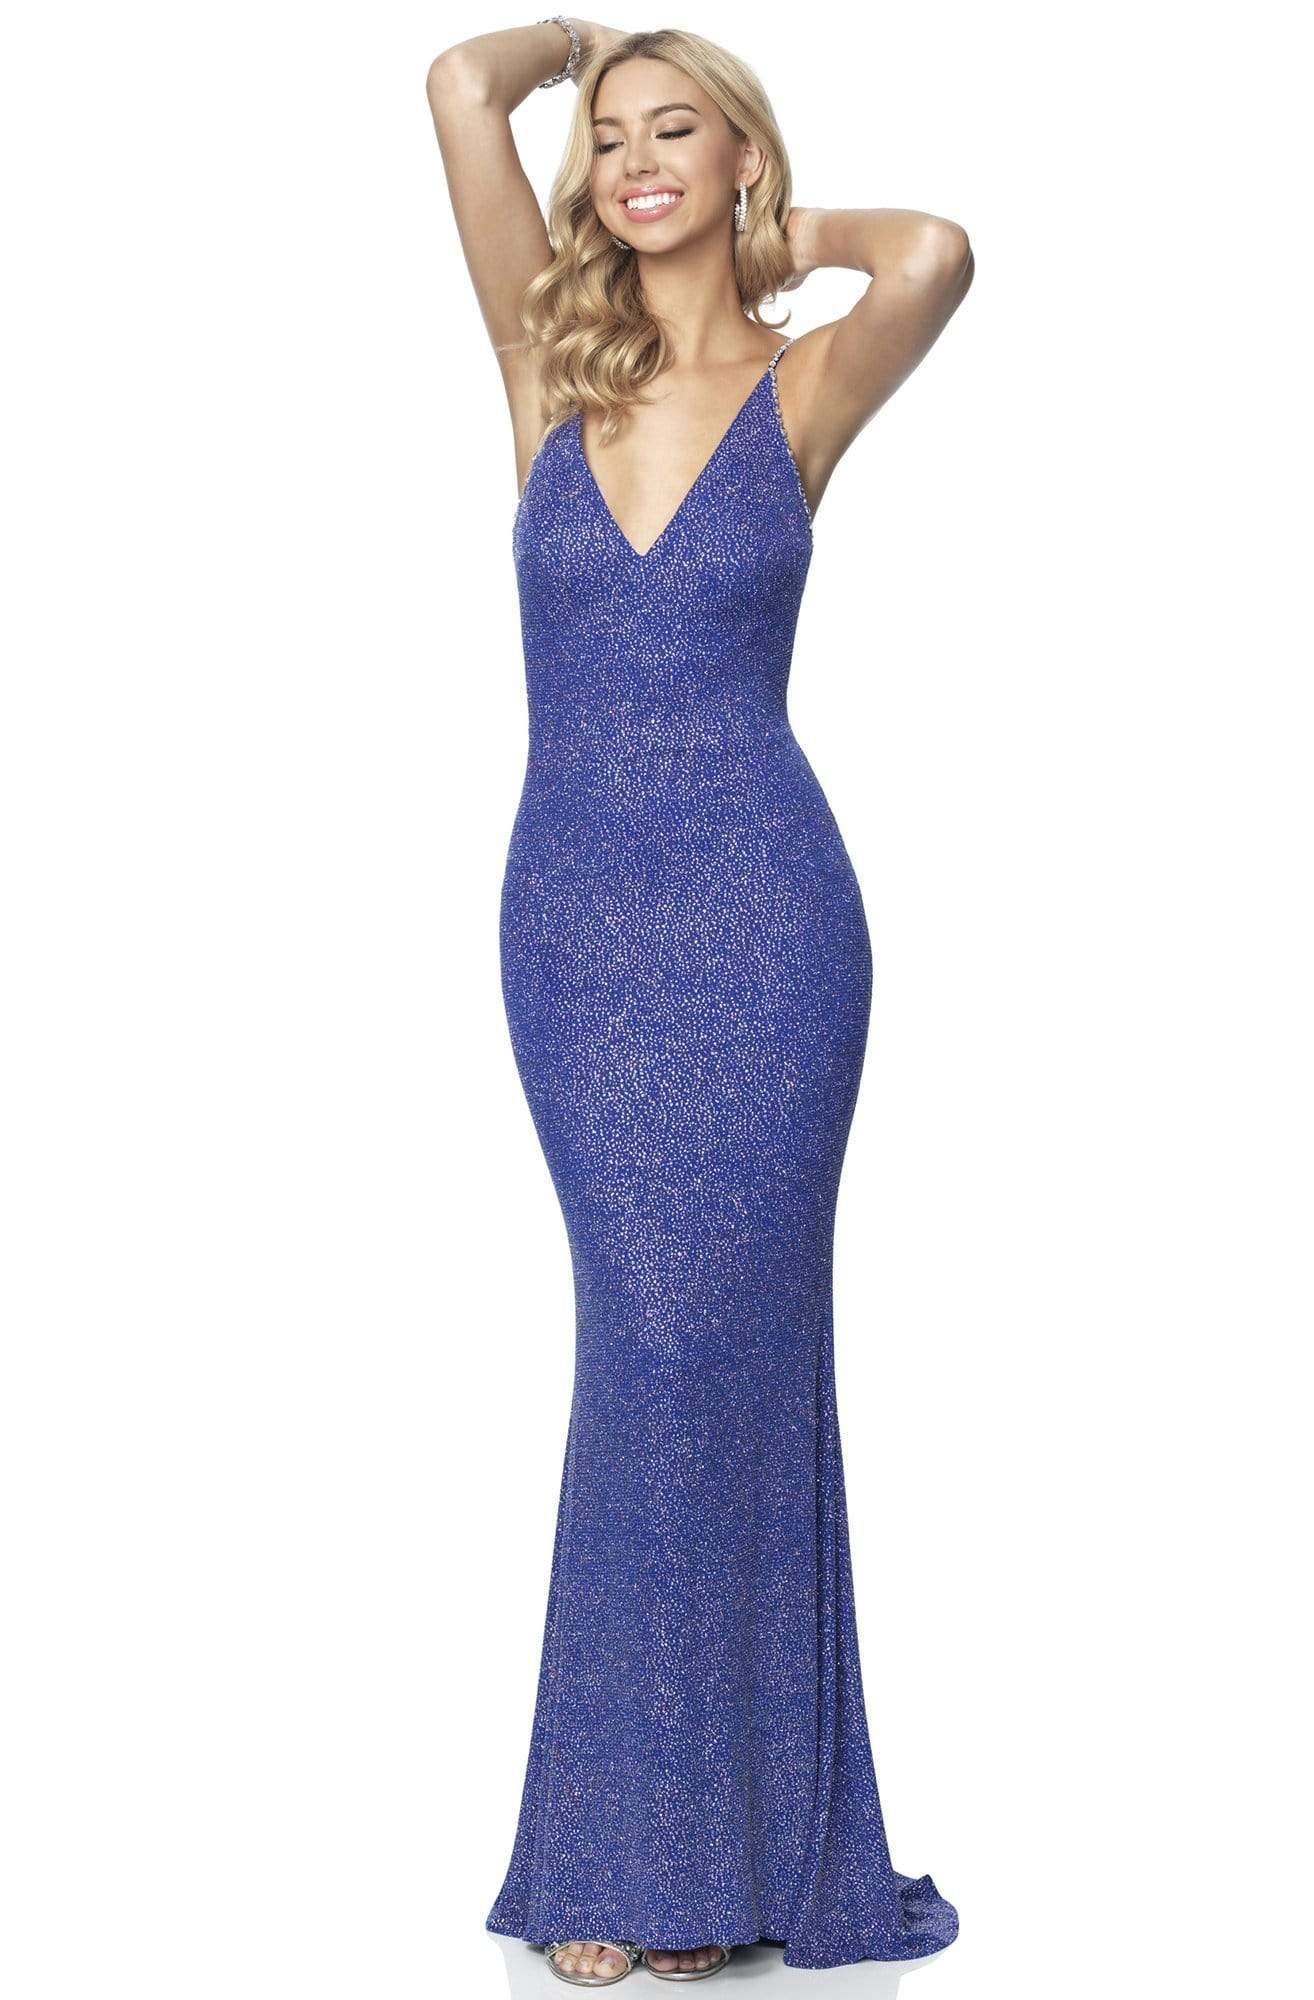 Blush by Alexia Designs - 11889 Sleeveless V Neck Glitter Knit Gown Evening Dresses 0 / Cobalt